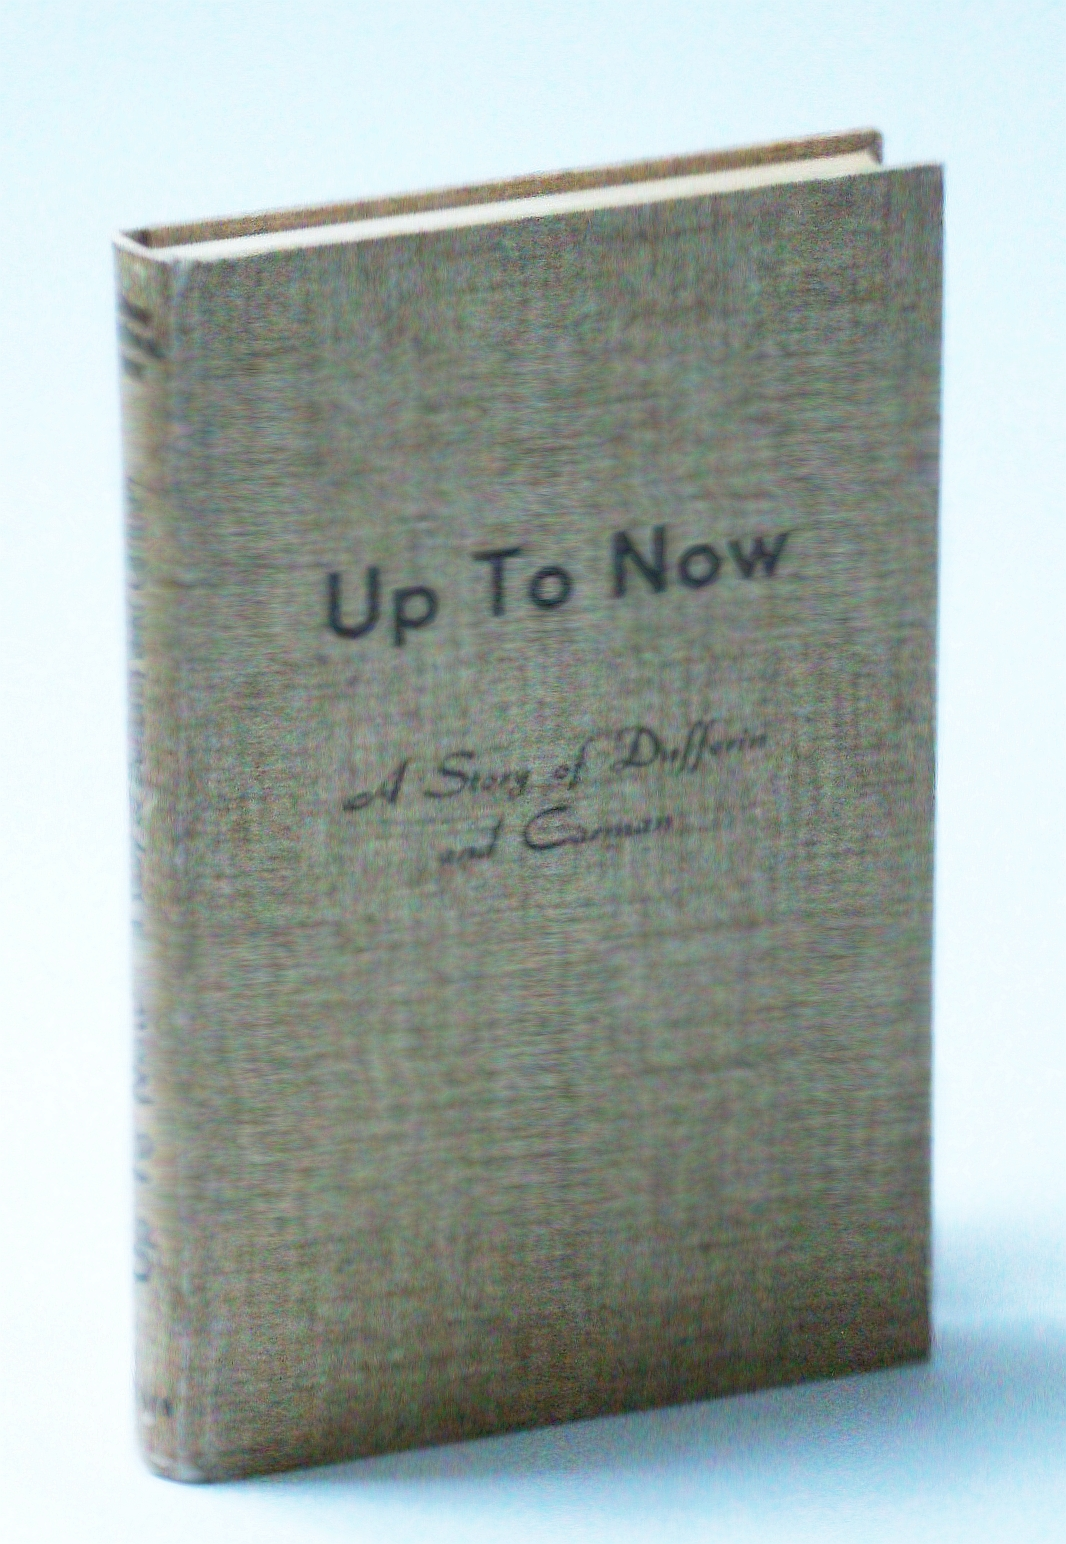 Image for Up to Now: A Story of Dufferin and Carman (Manitoba History)